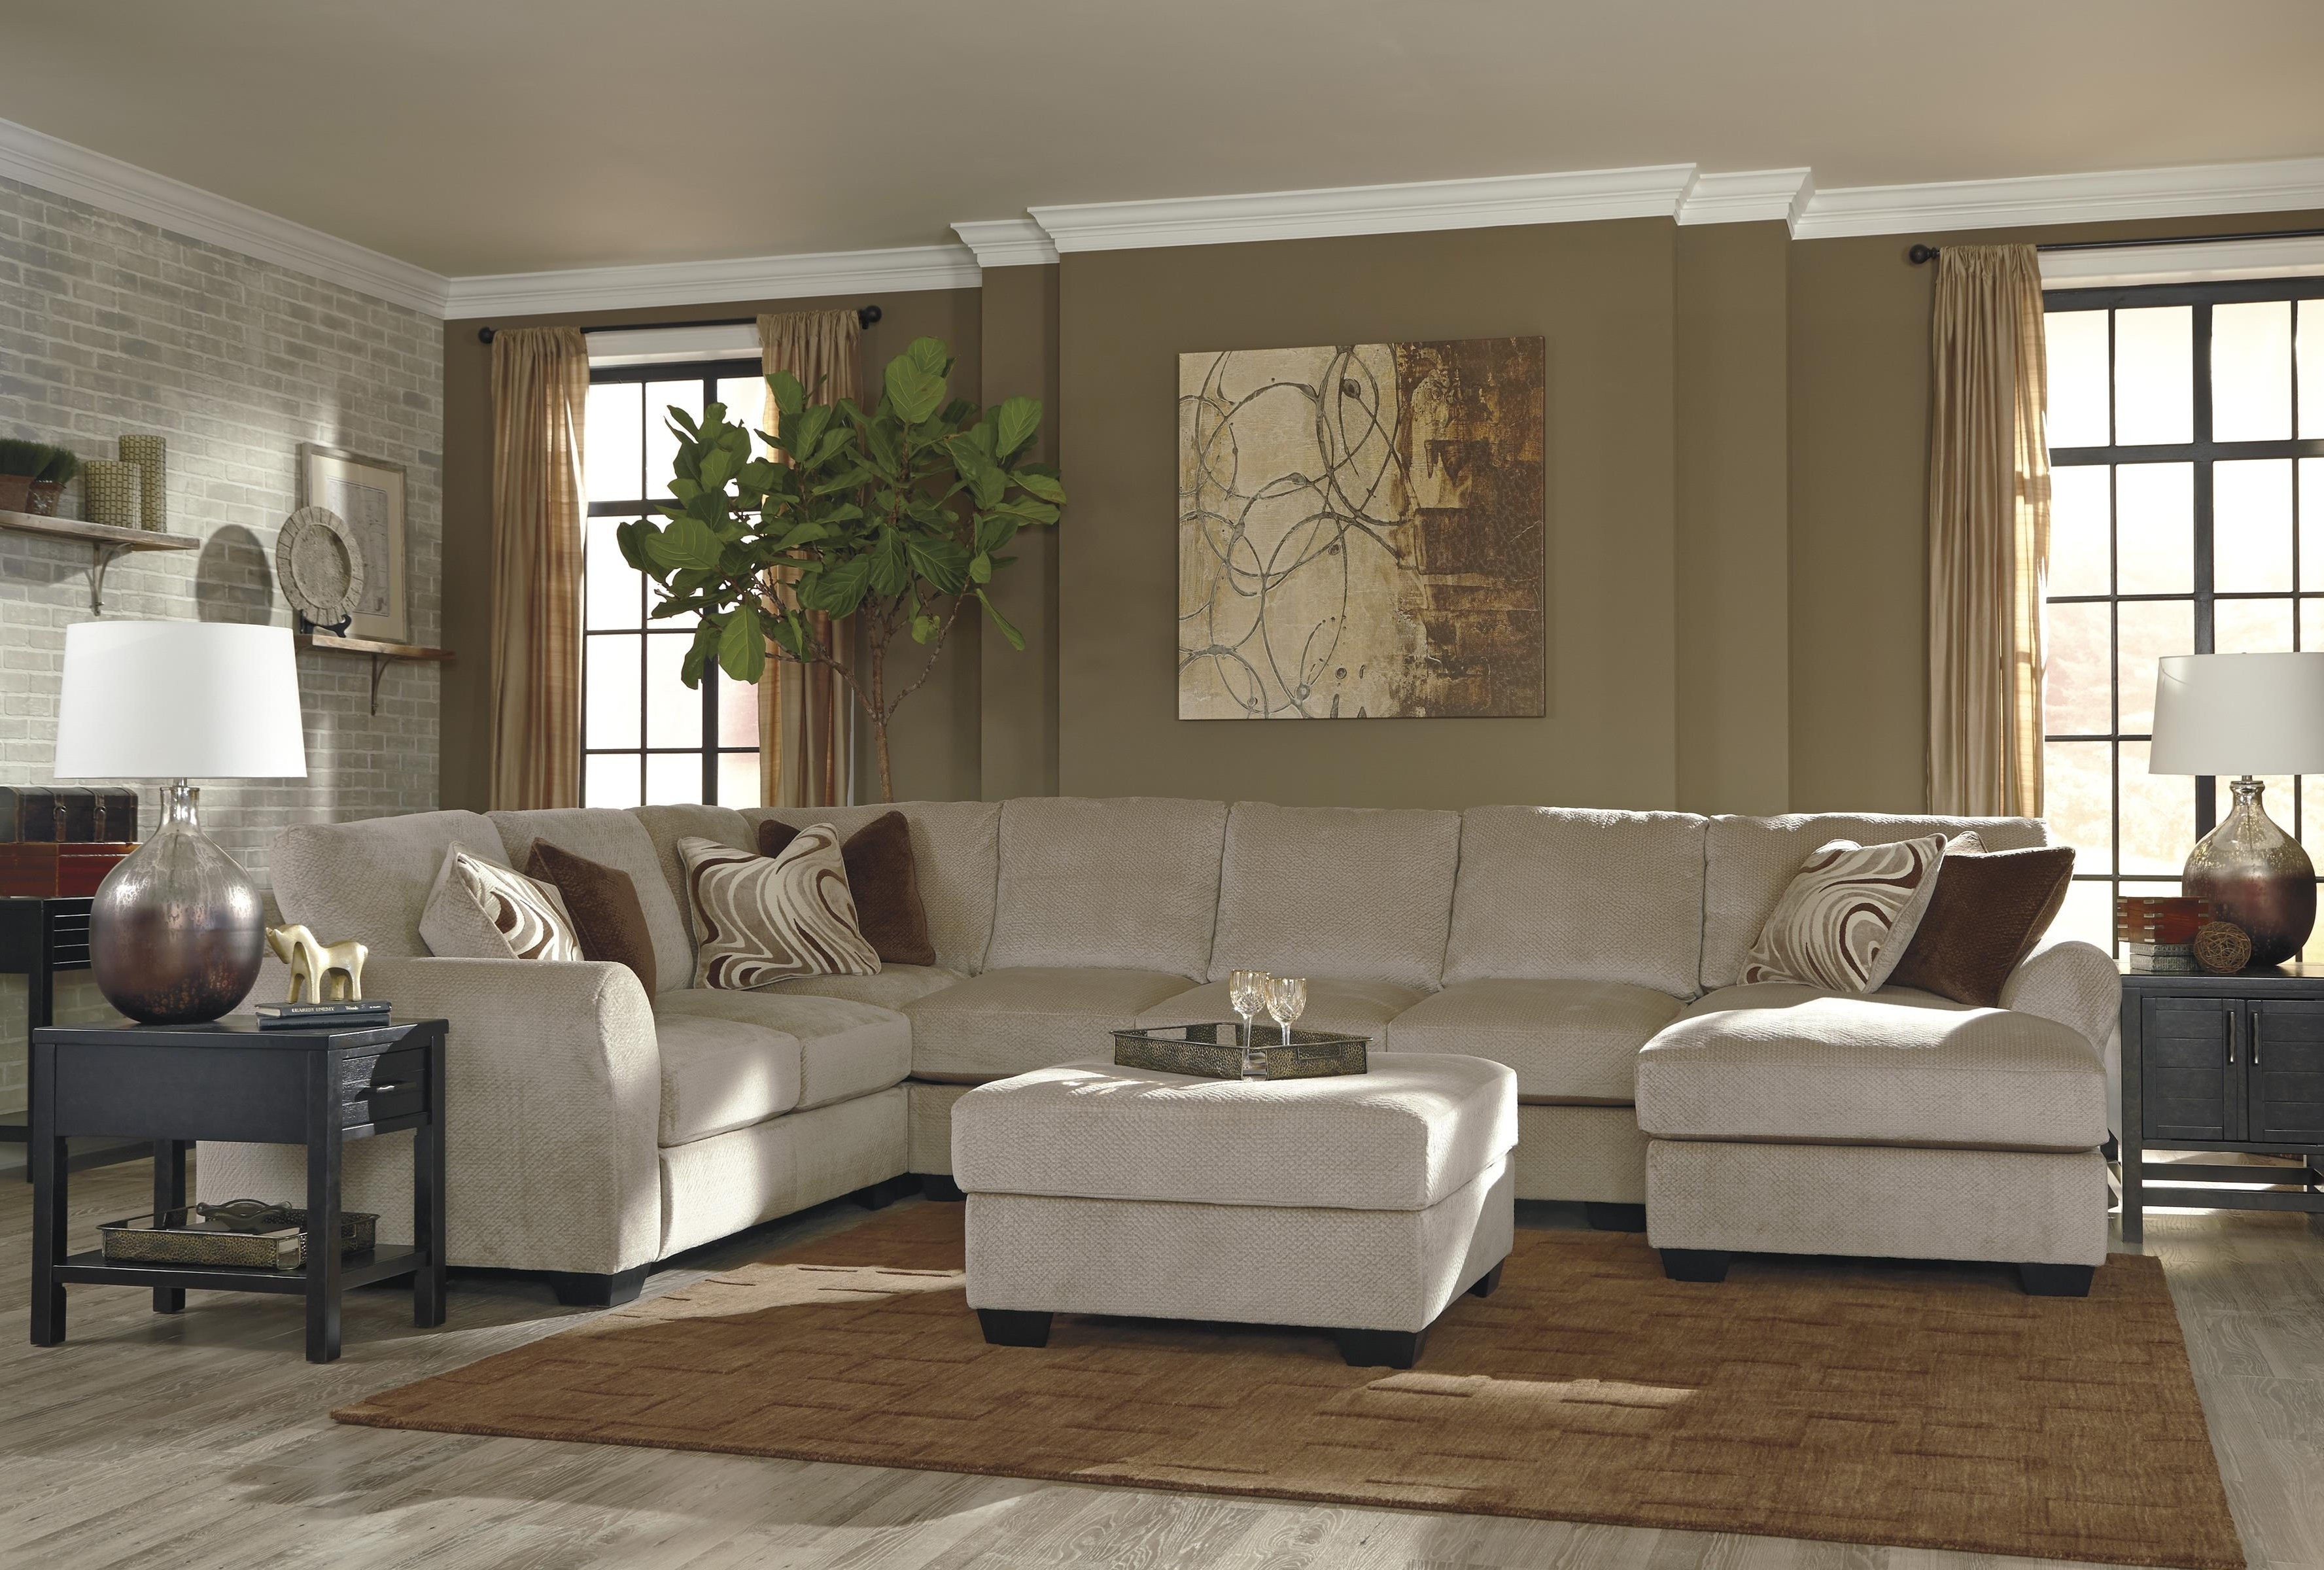 Widely Used 4 Piece Sectional Sofas With Chaise Intended For 4 Piece Sectional W/ Armless Sofa & Left Chaisebenchcraft (View 14 of 15)